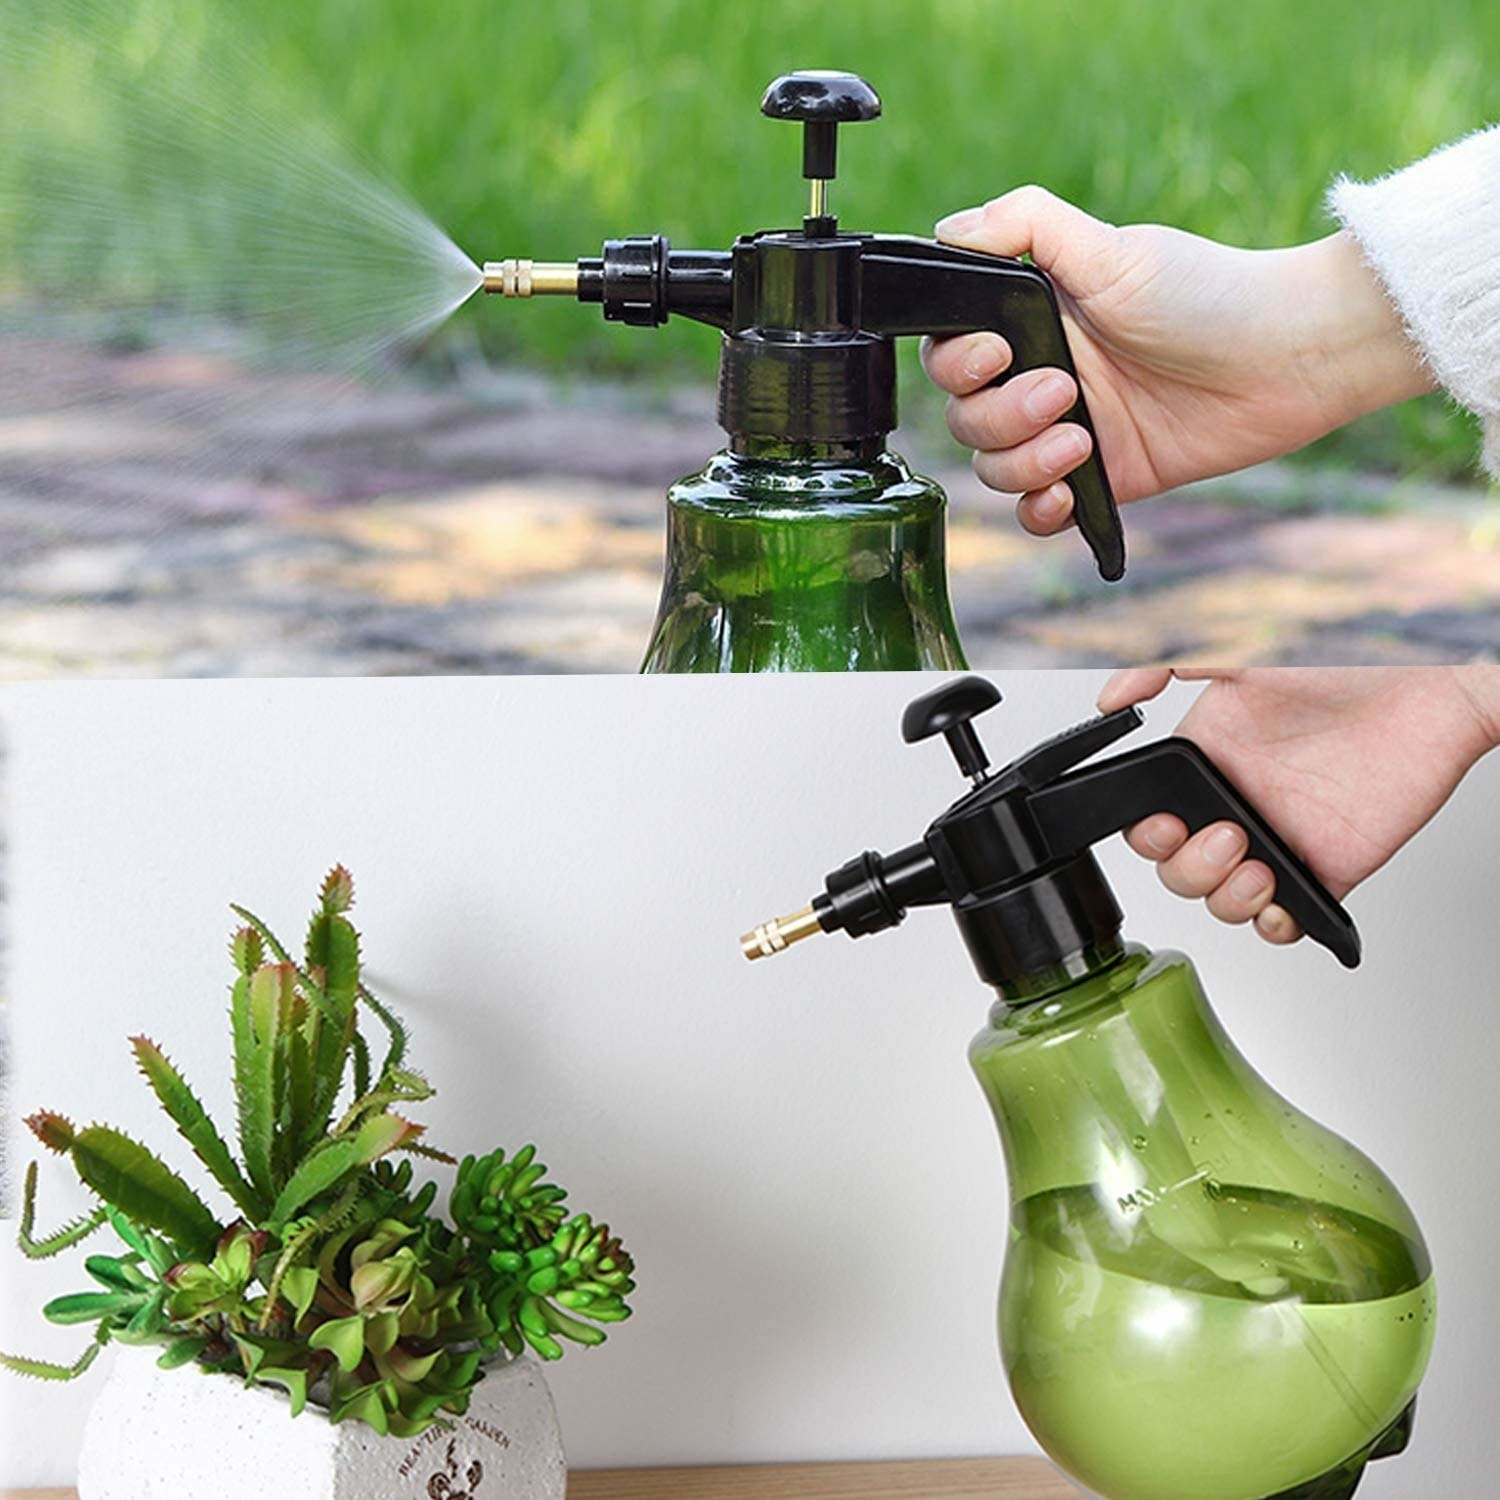 A green spray bottle with a black nozzle and a metallic tip